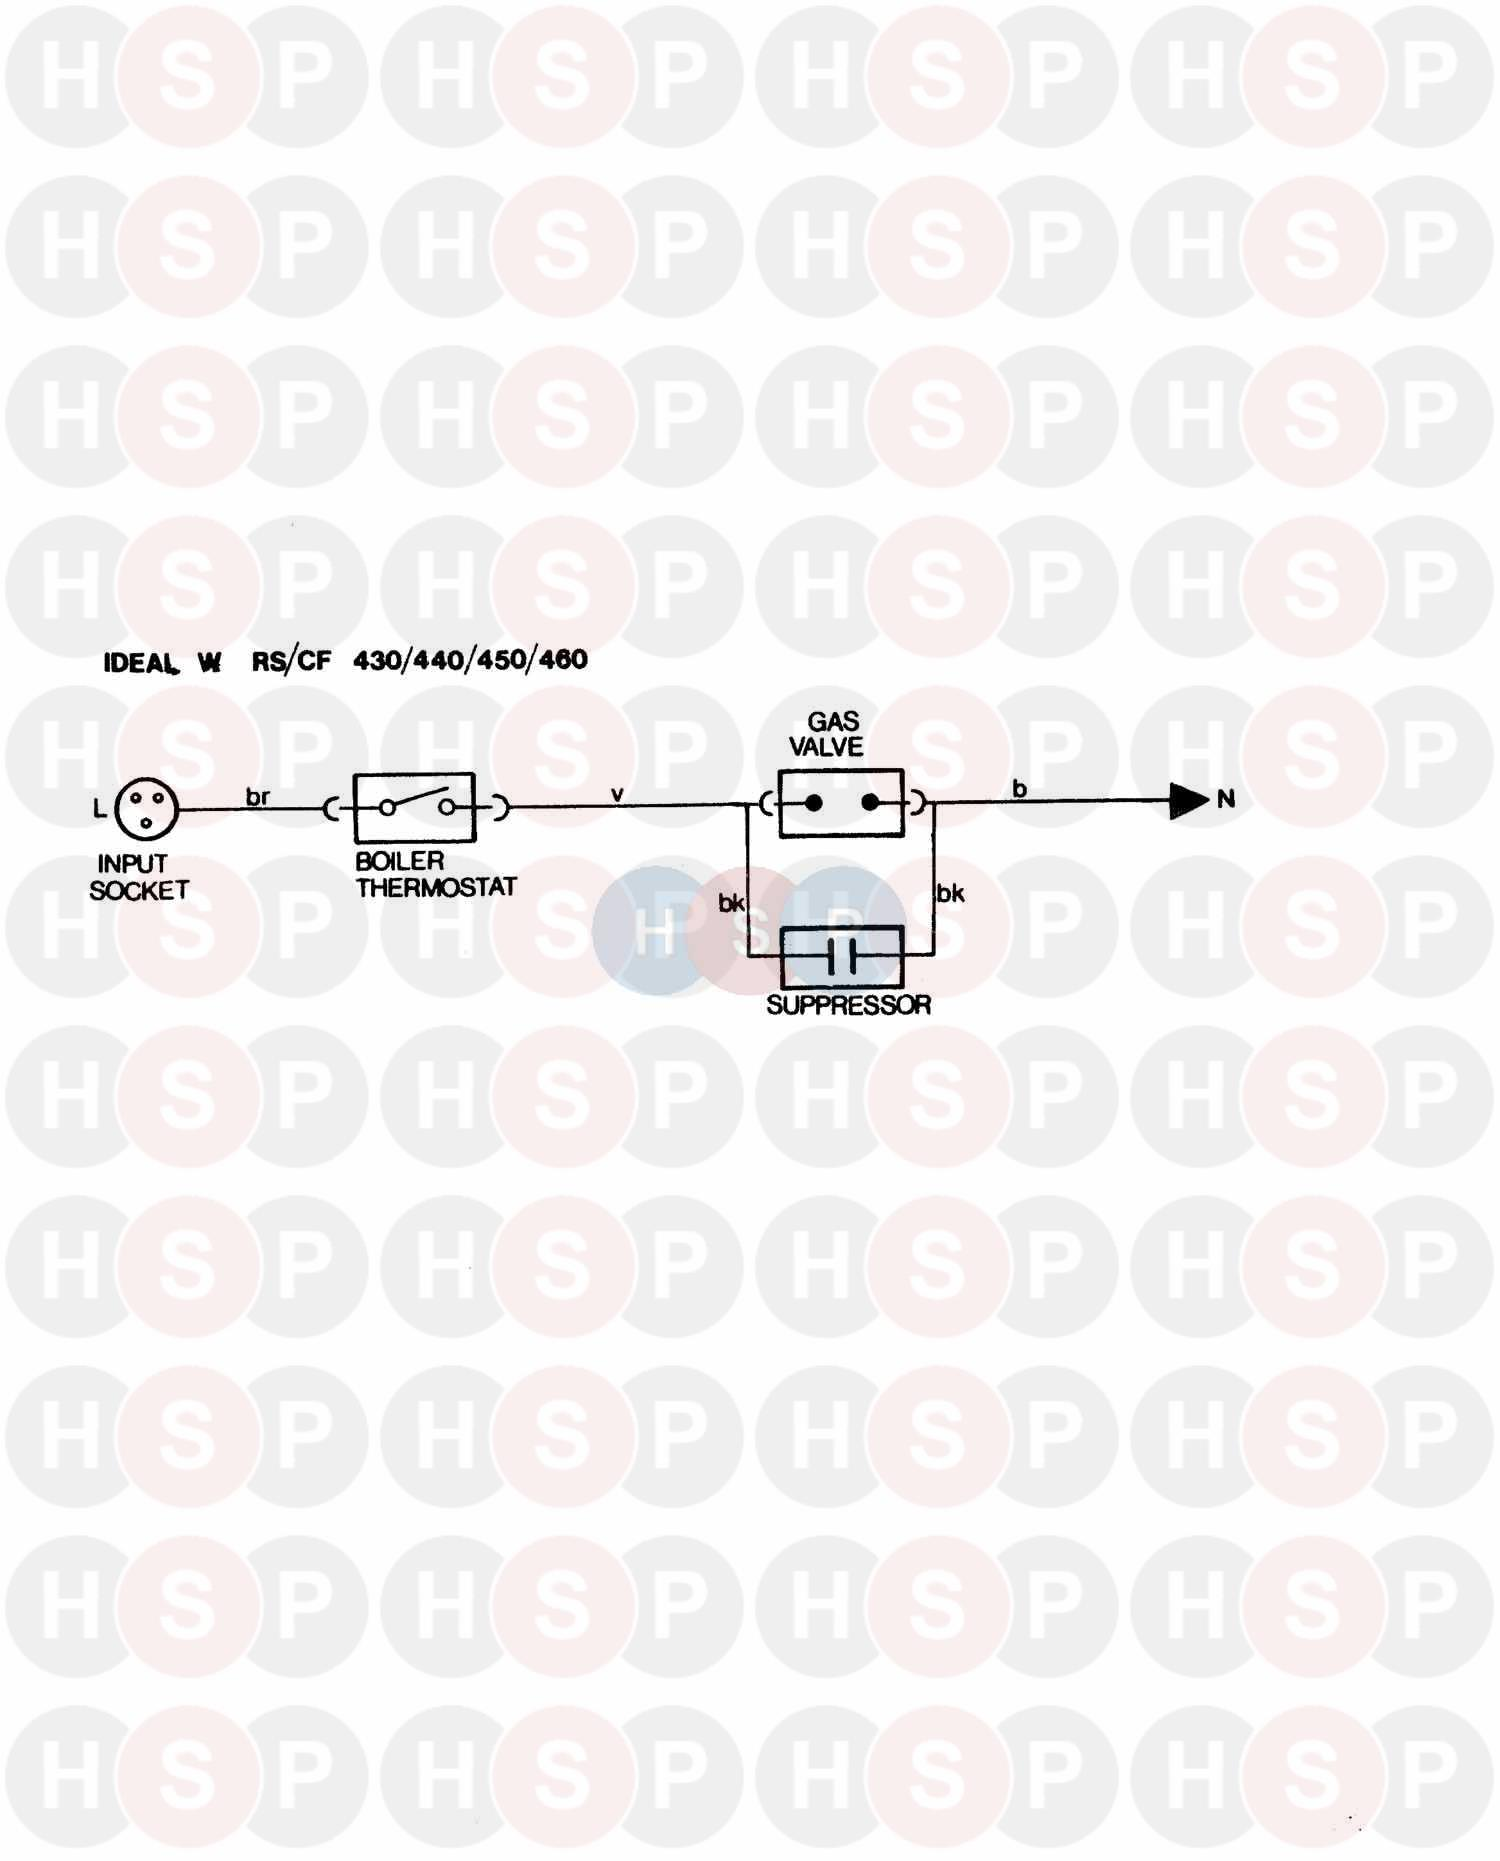 Ideal Concord Wcf 460 Wiring Diagram 2 Heating Spare Parts Fan Switch Click The To Open It On A New Page